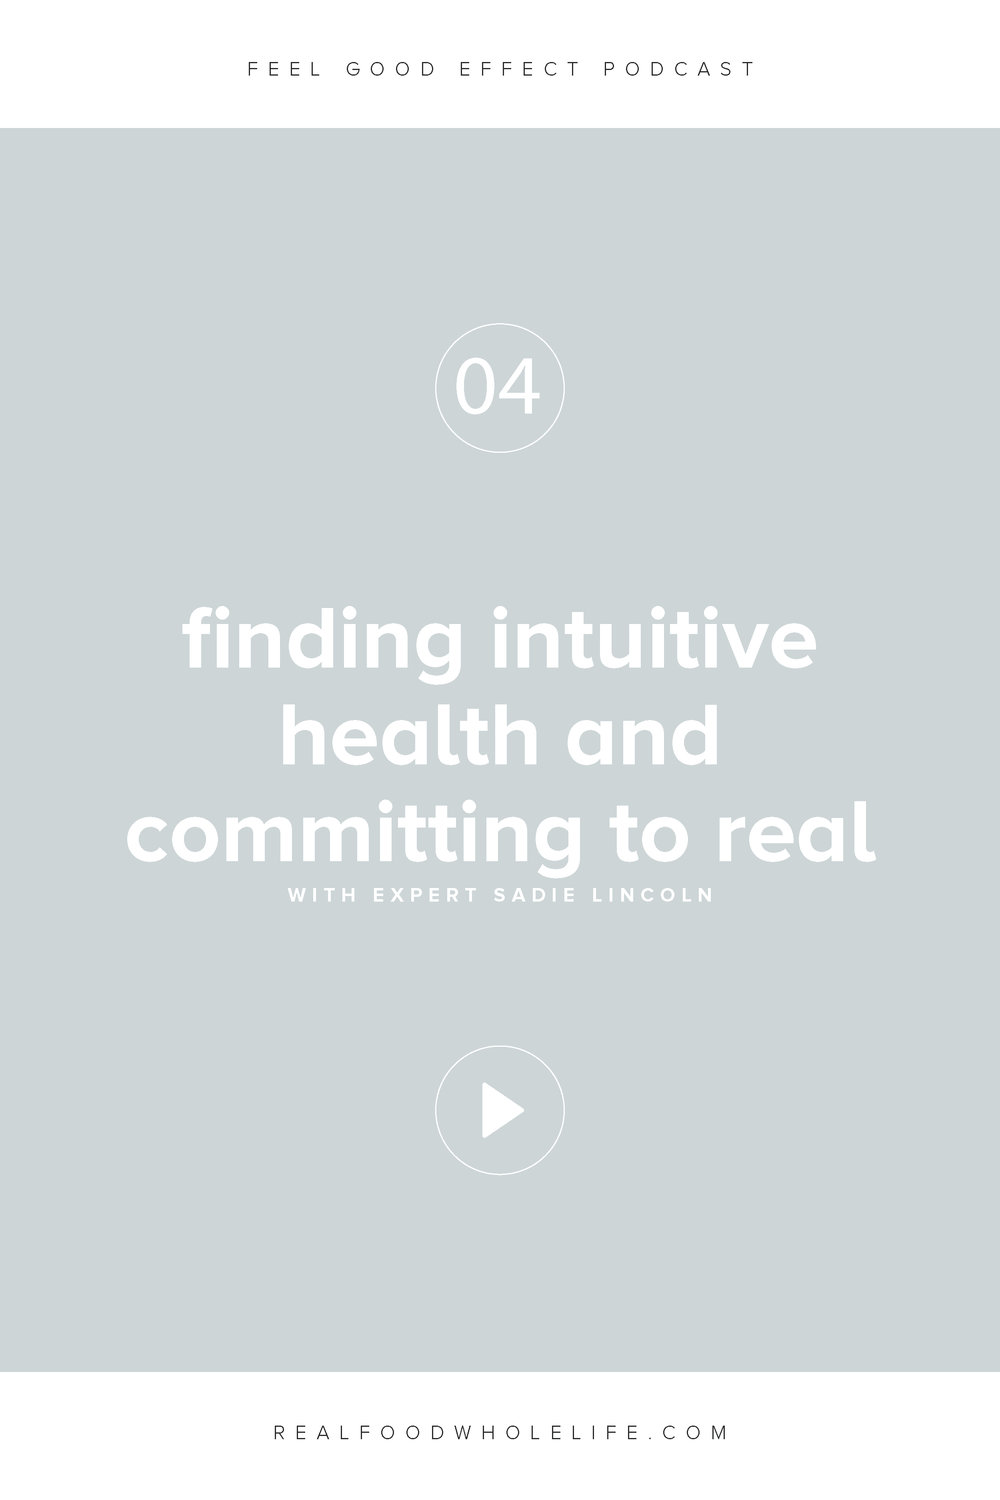 Finding Intuitive Health and Committing to Real with Sadie Lincoln